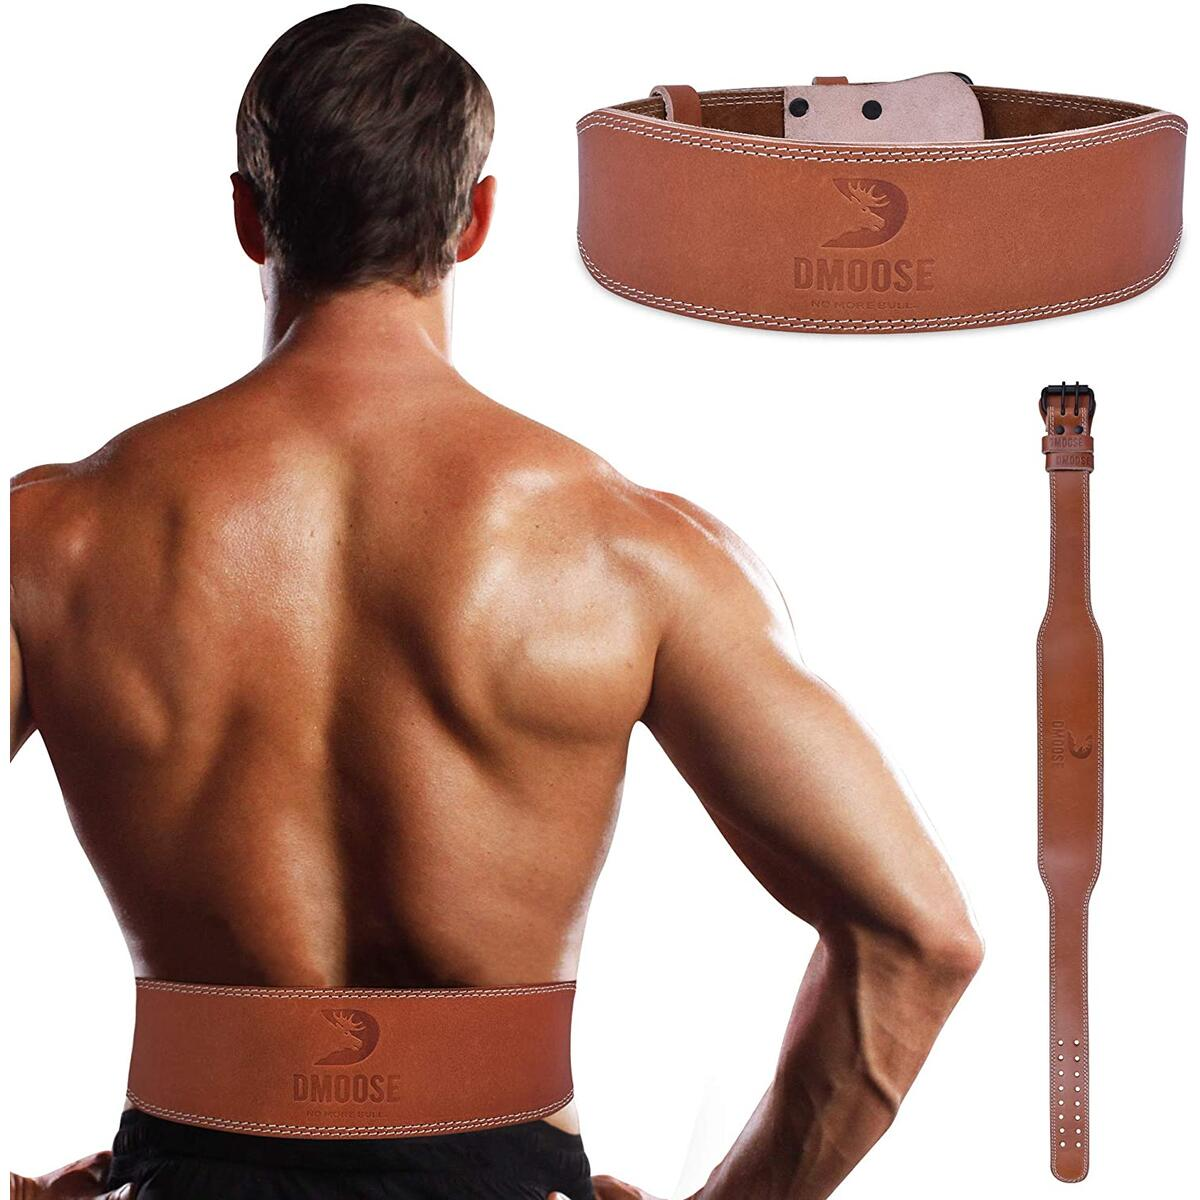 DMoose Weightlifting Leather Brown/White Stitch (All Available Sizes 4 INCH ONLY)